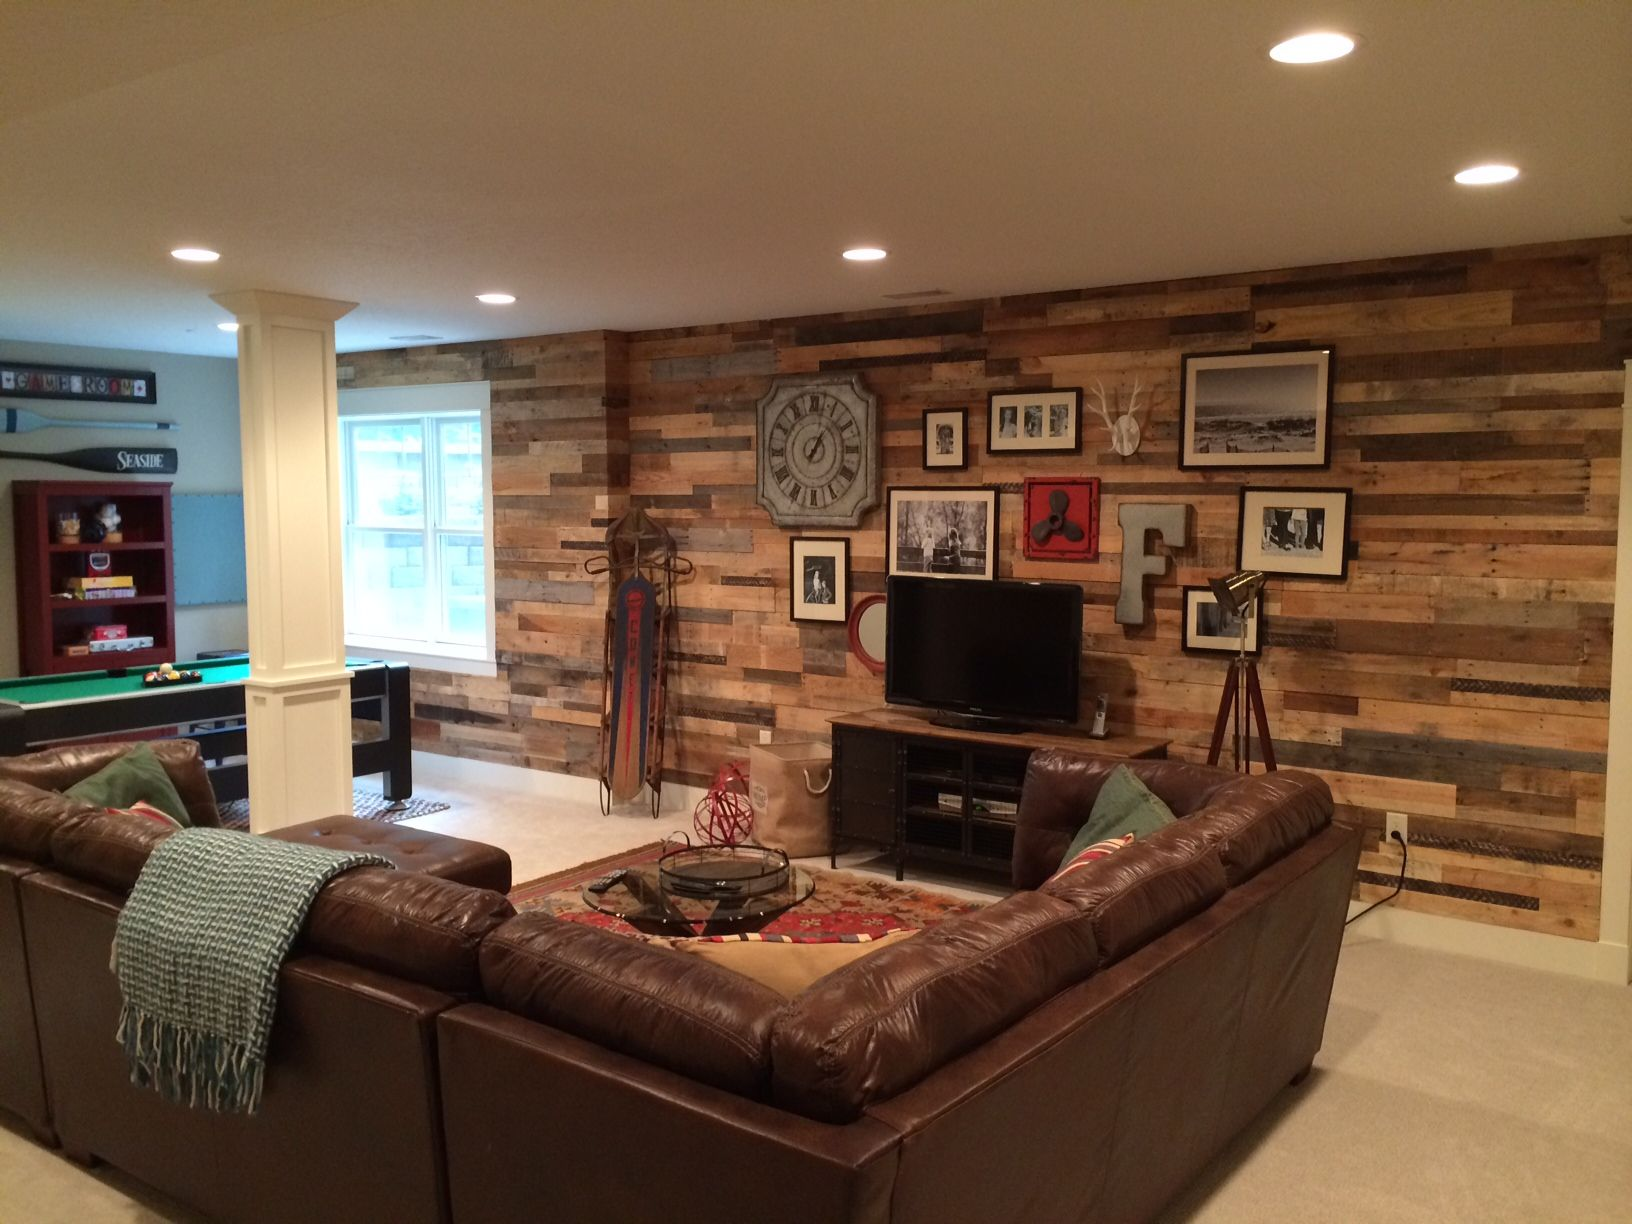 Authentic Pallet Wood Paneling Wood Walls Living Room Accent